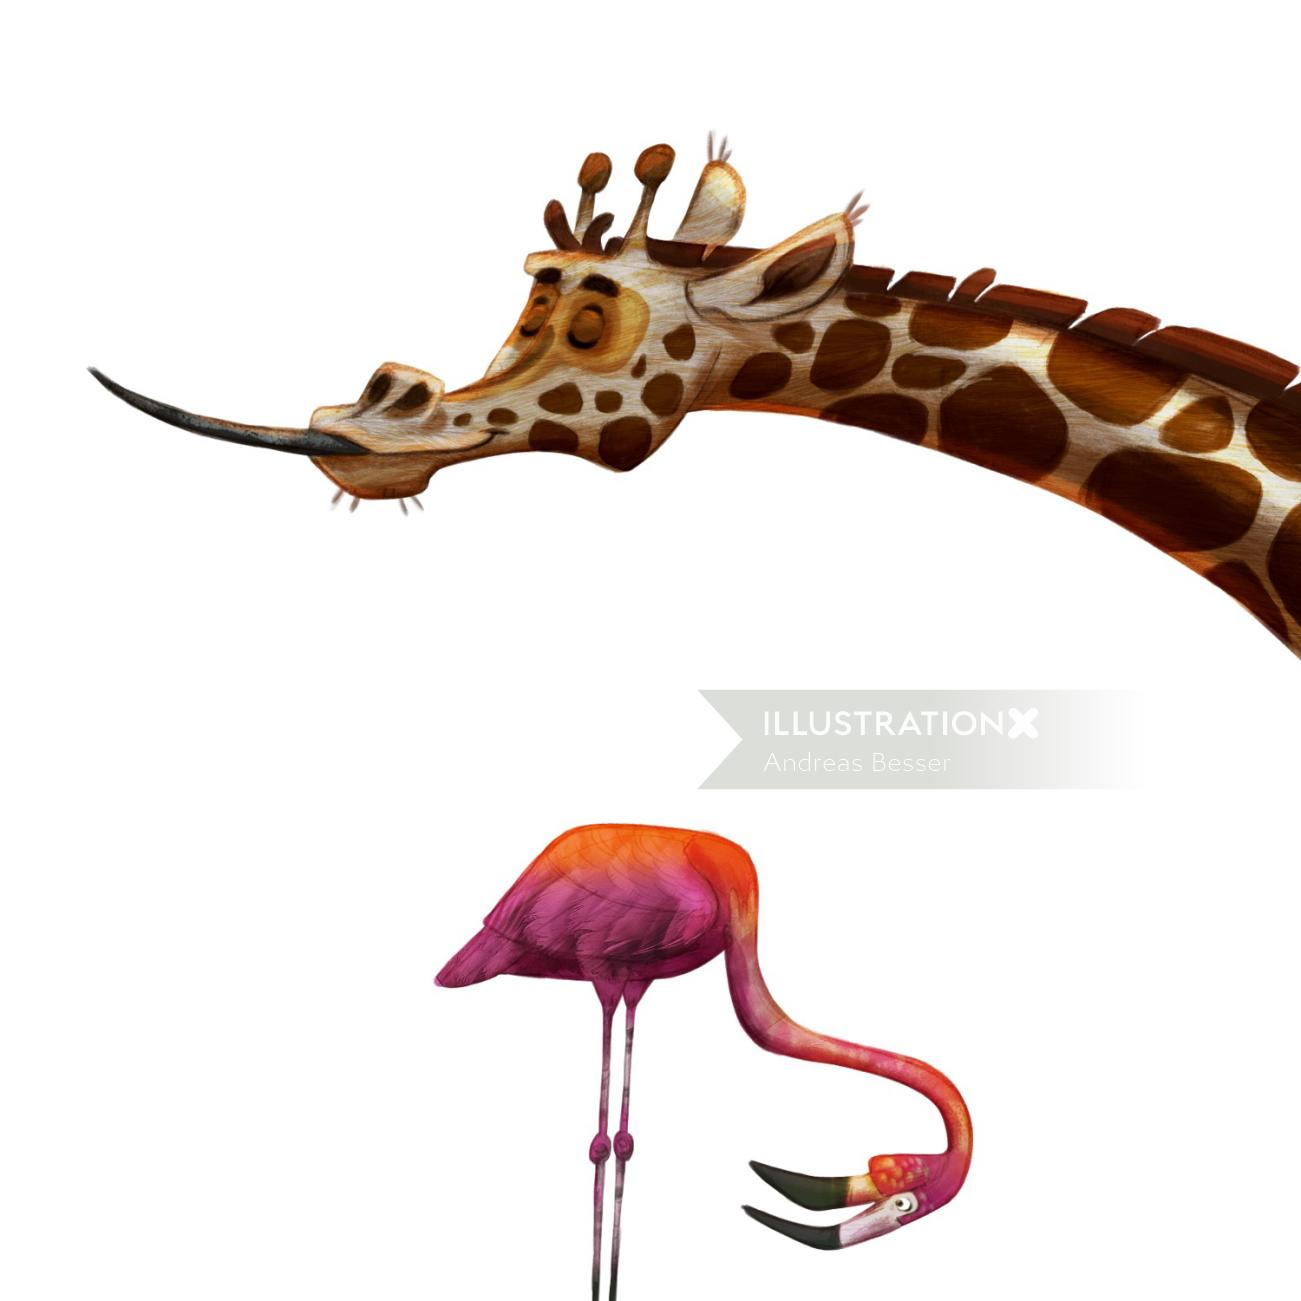 Animal illustration of Giraffee and crane